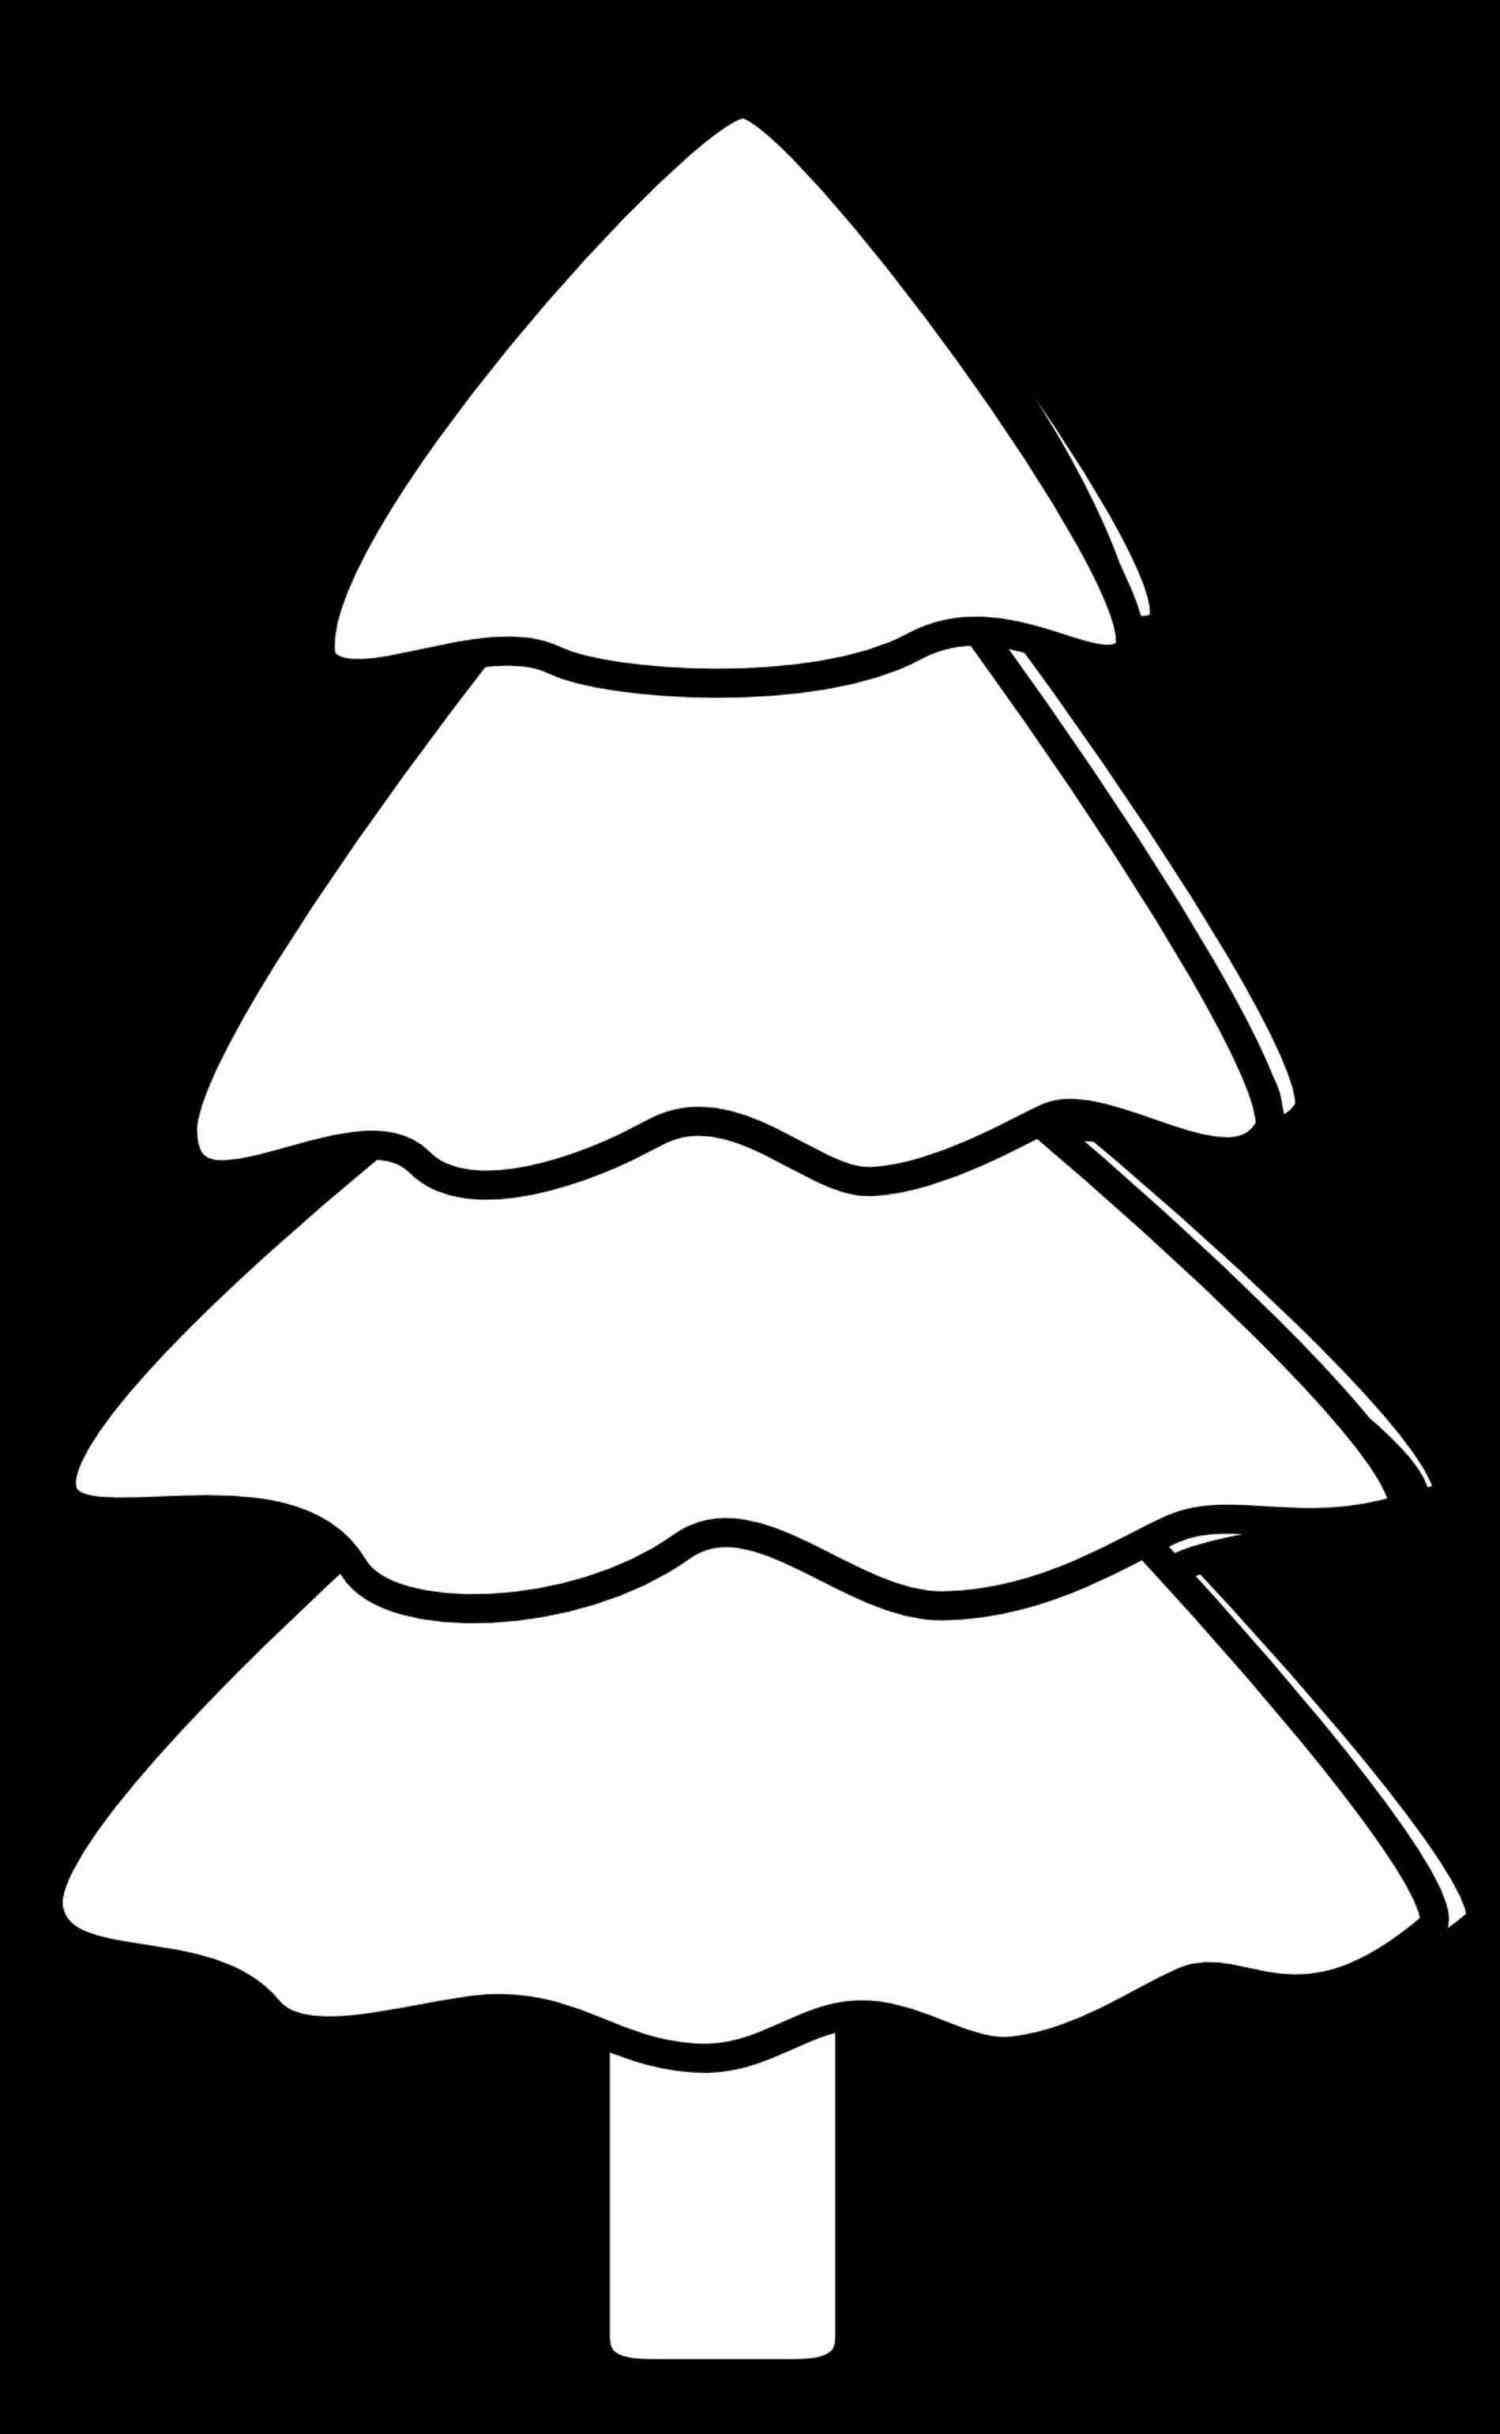 christmas divider clipart black and white.